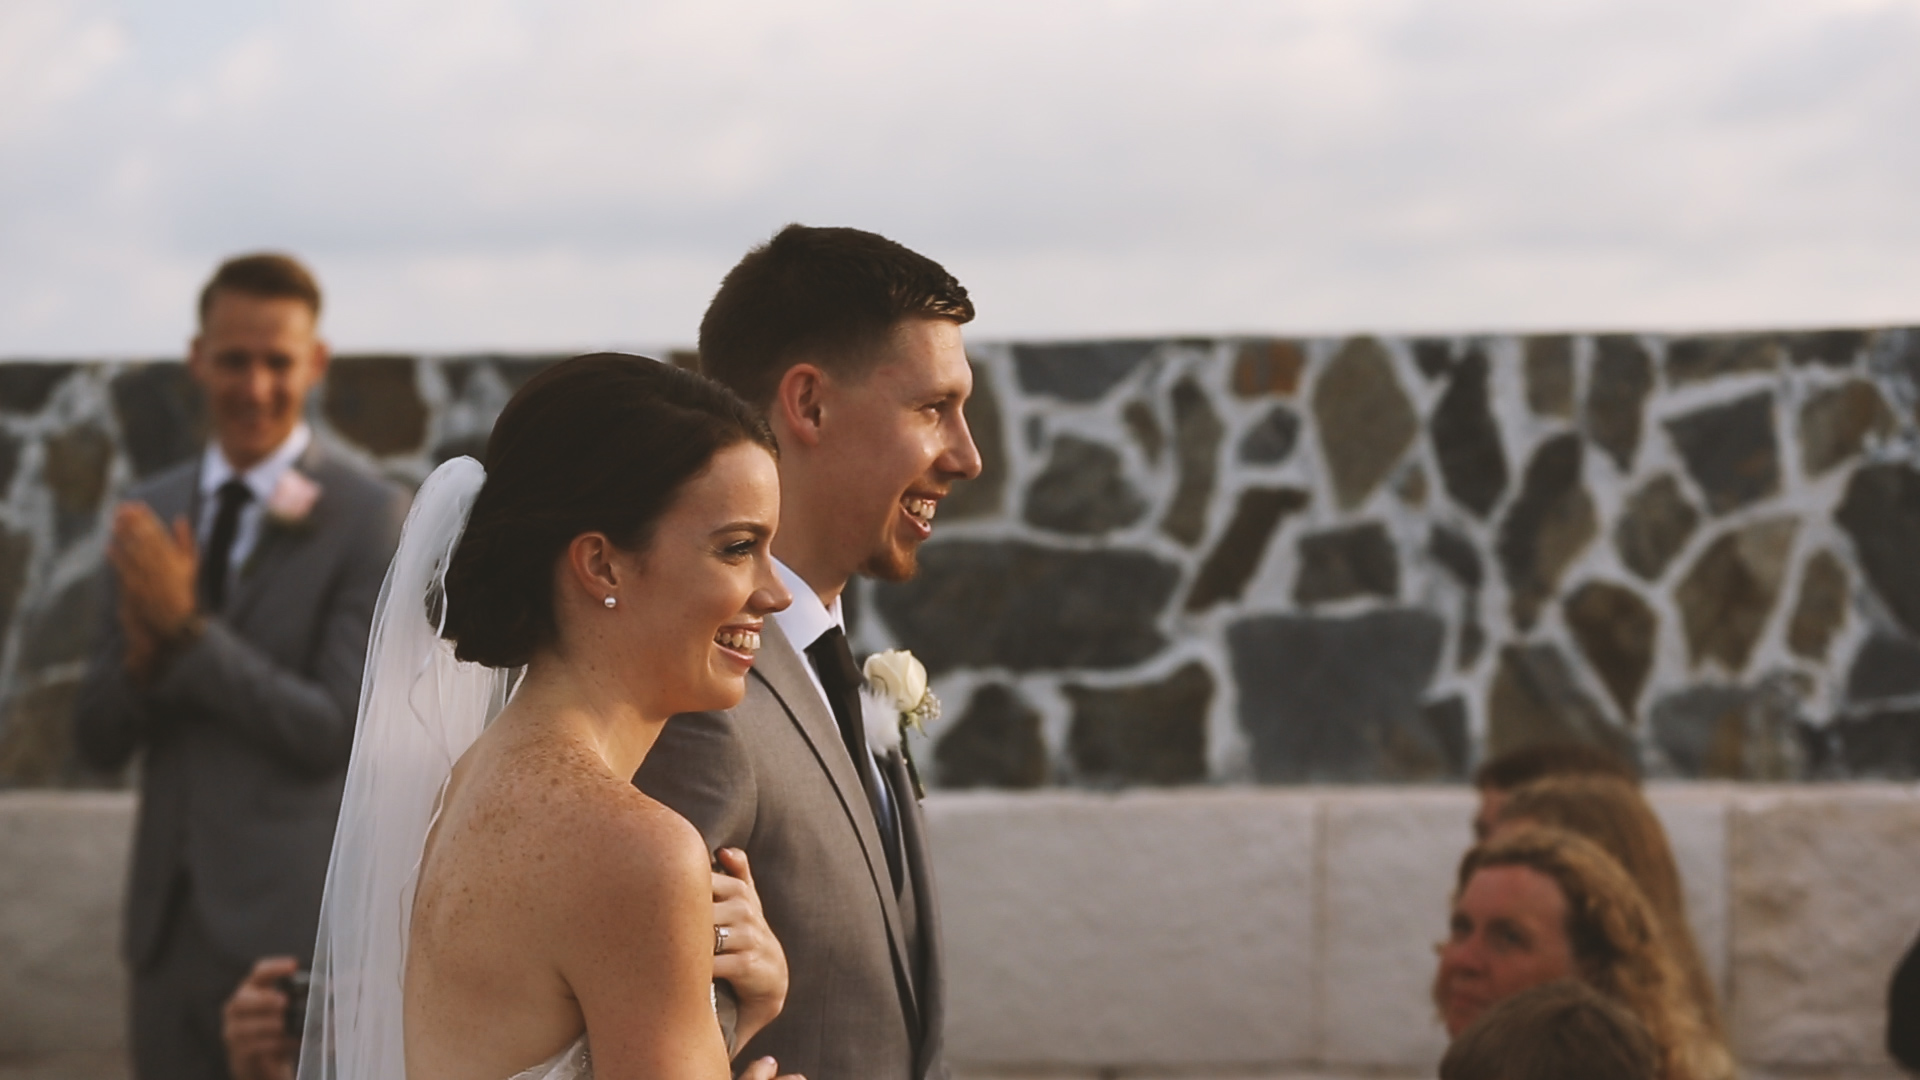 Sweet excited smiles as the new Mr. and Mrs. Thornhill!!